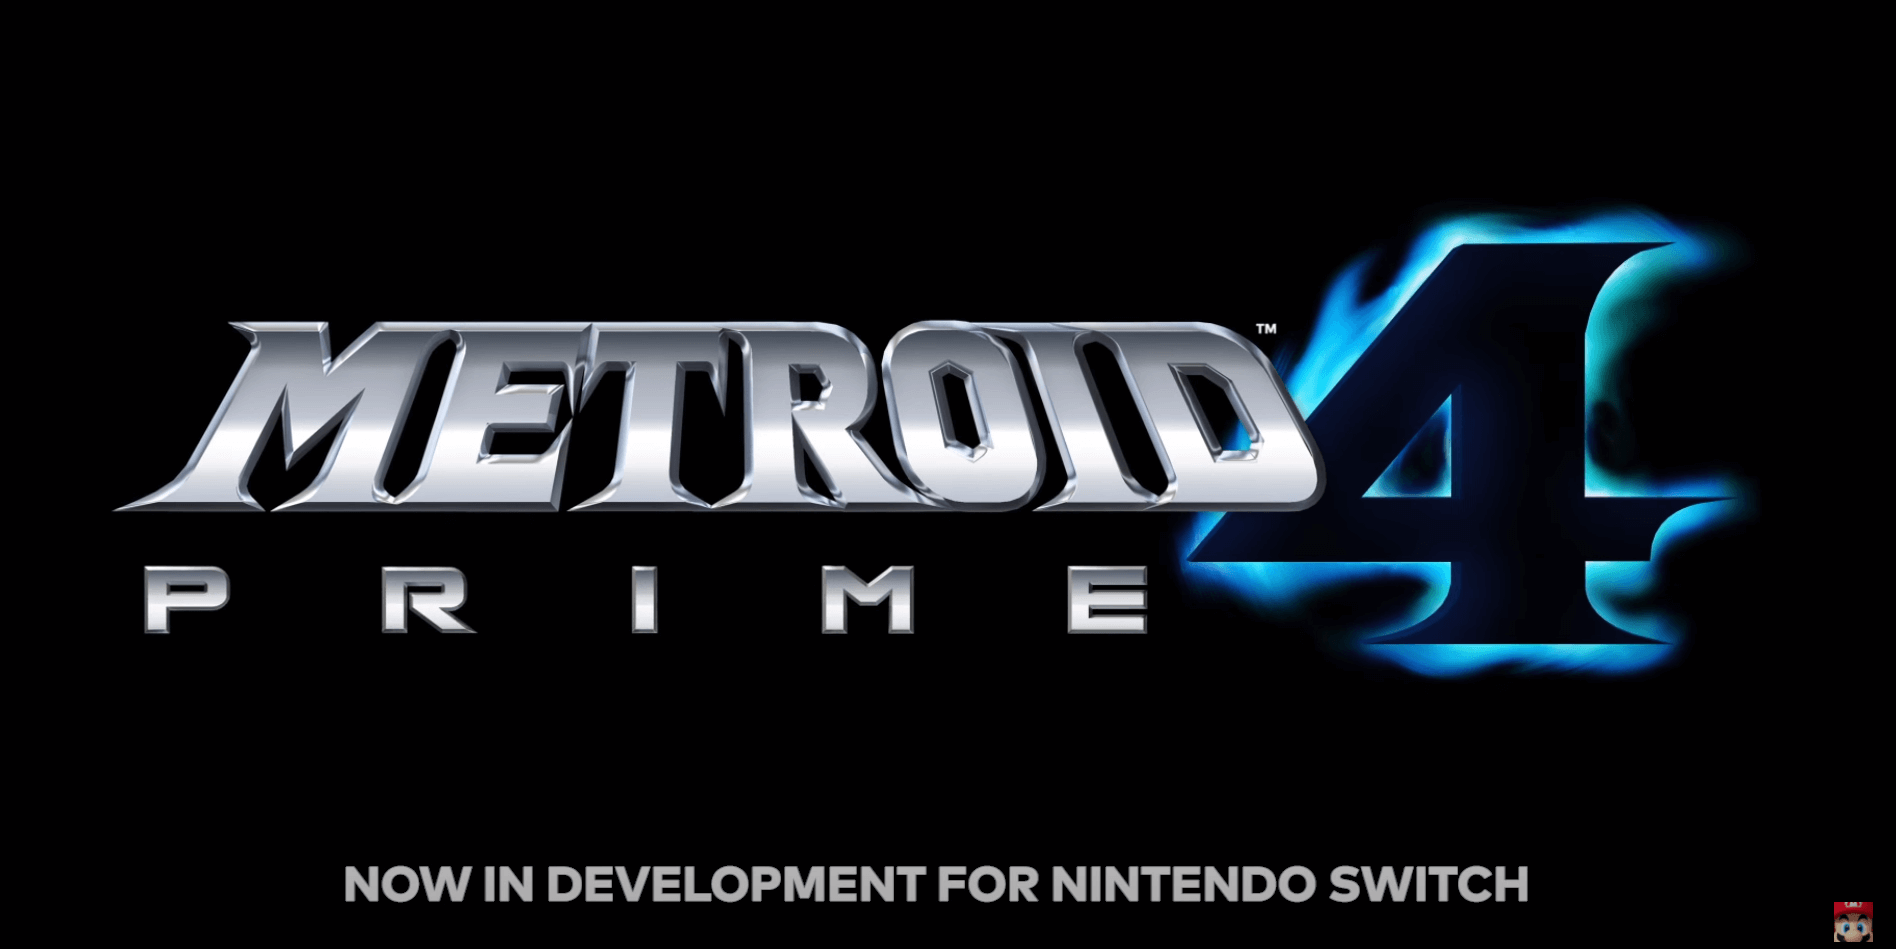 metroid prime 4 retro studios trying to hire lead producer for 3 months